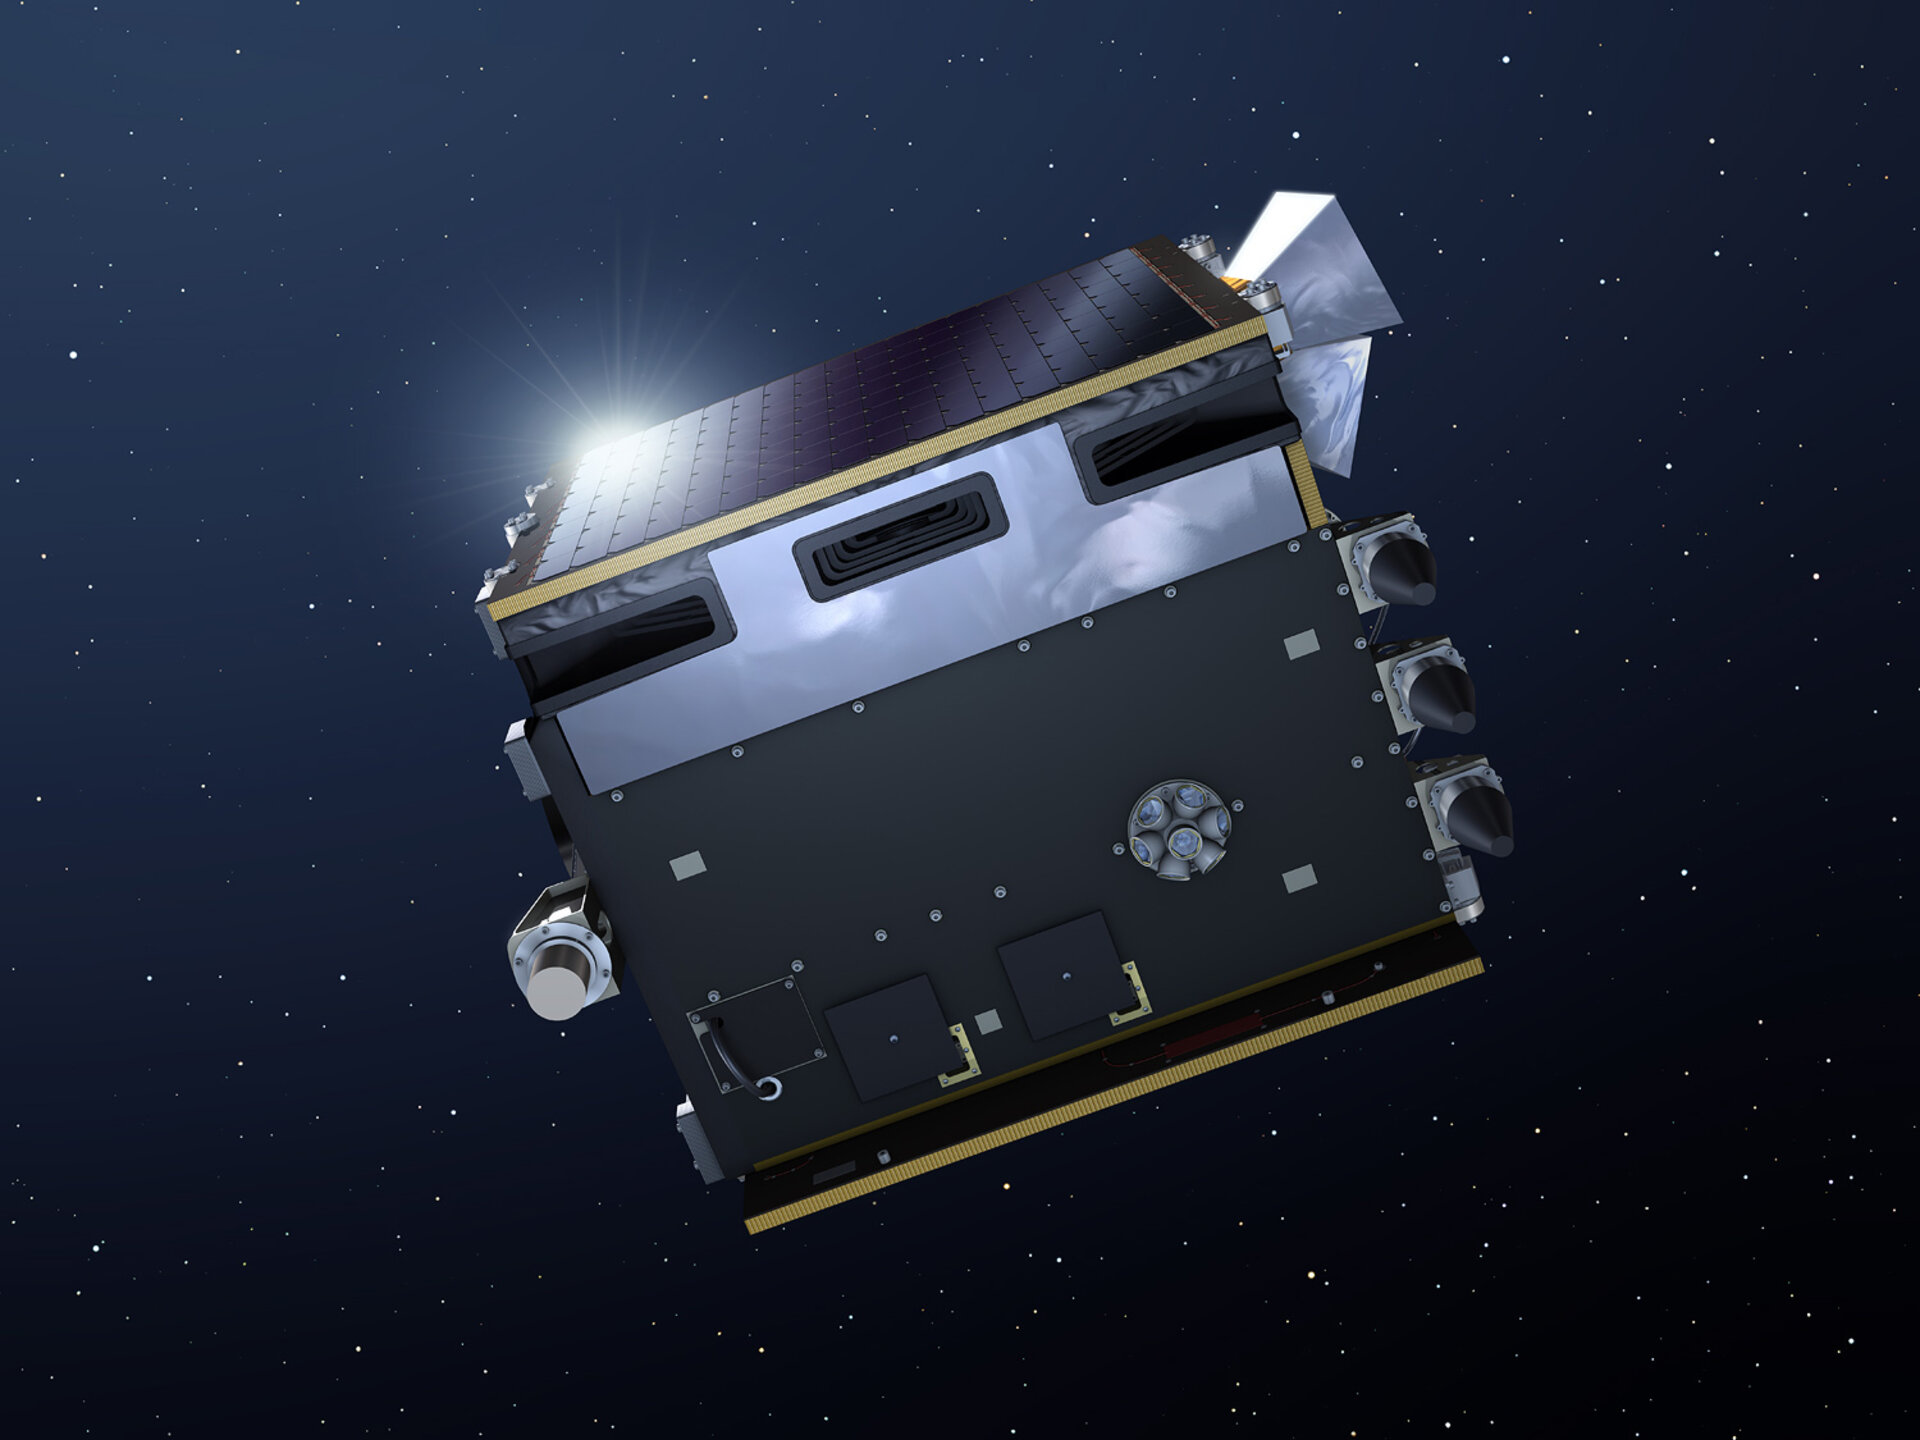 Artistic impression of the Proba-V satellite